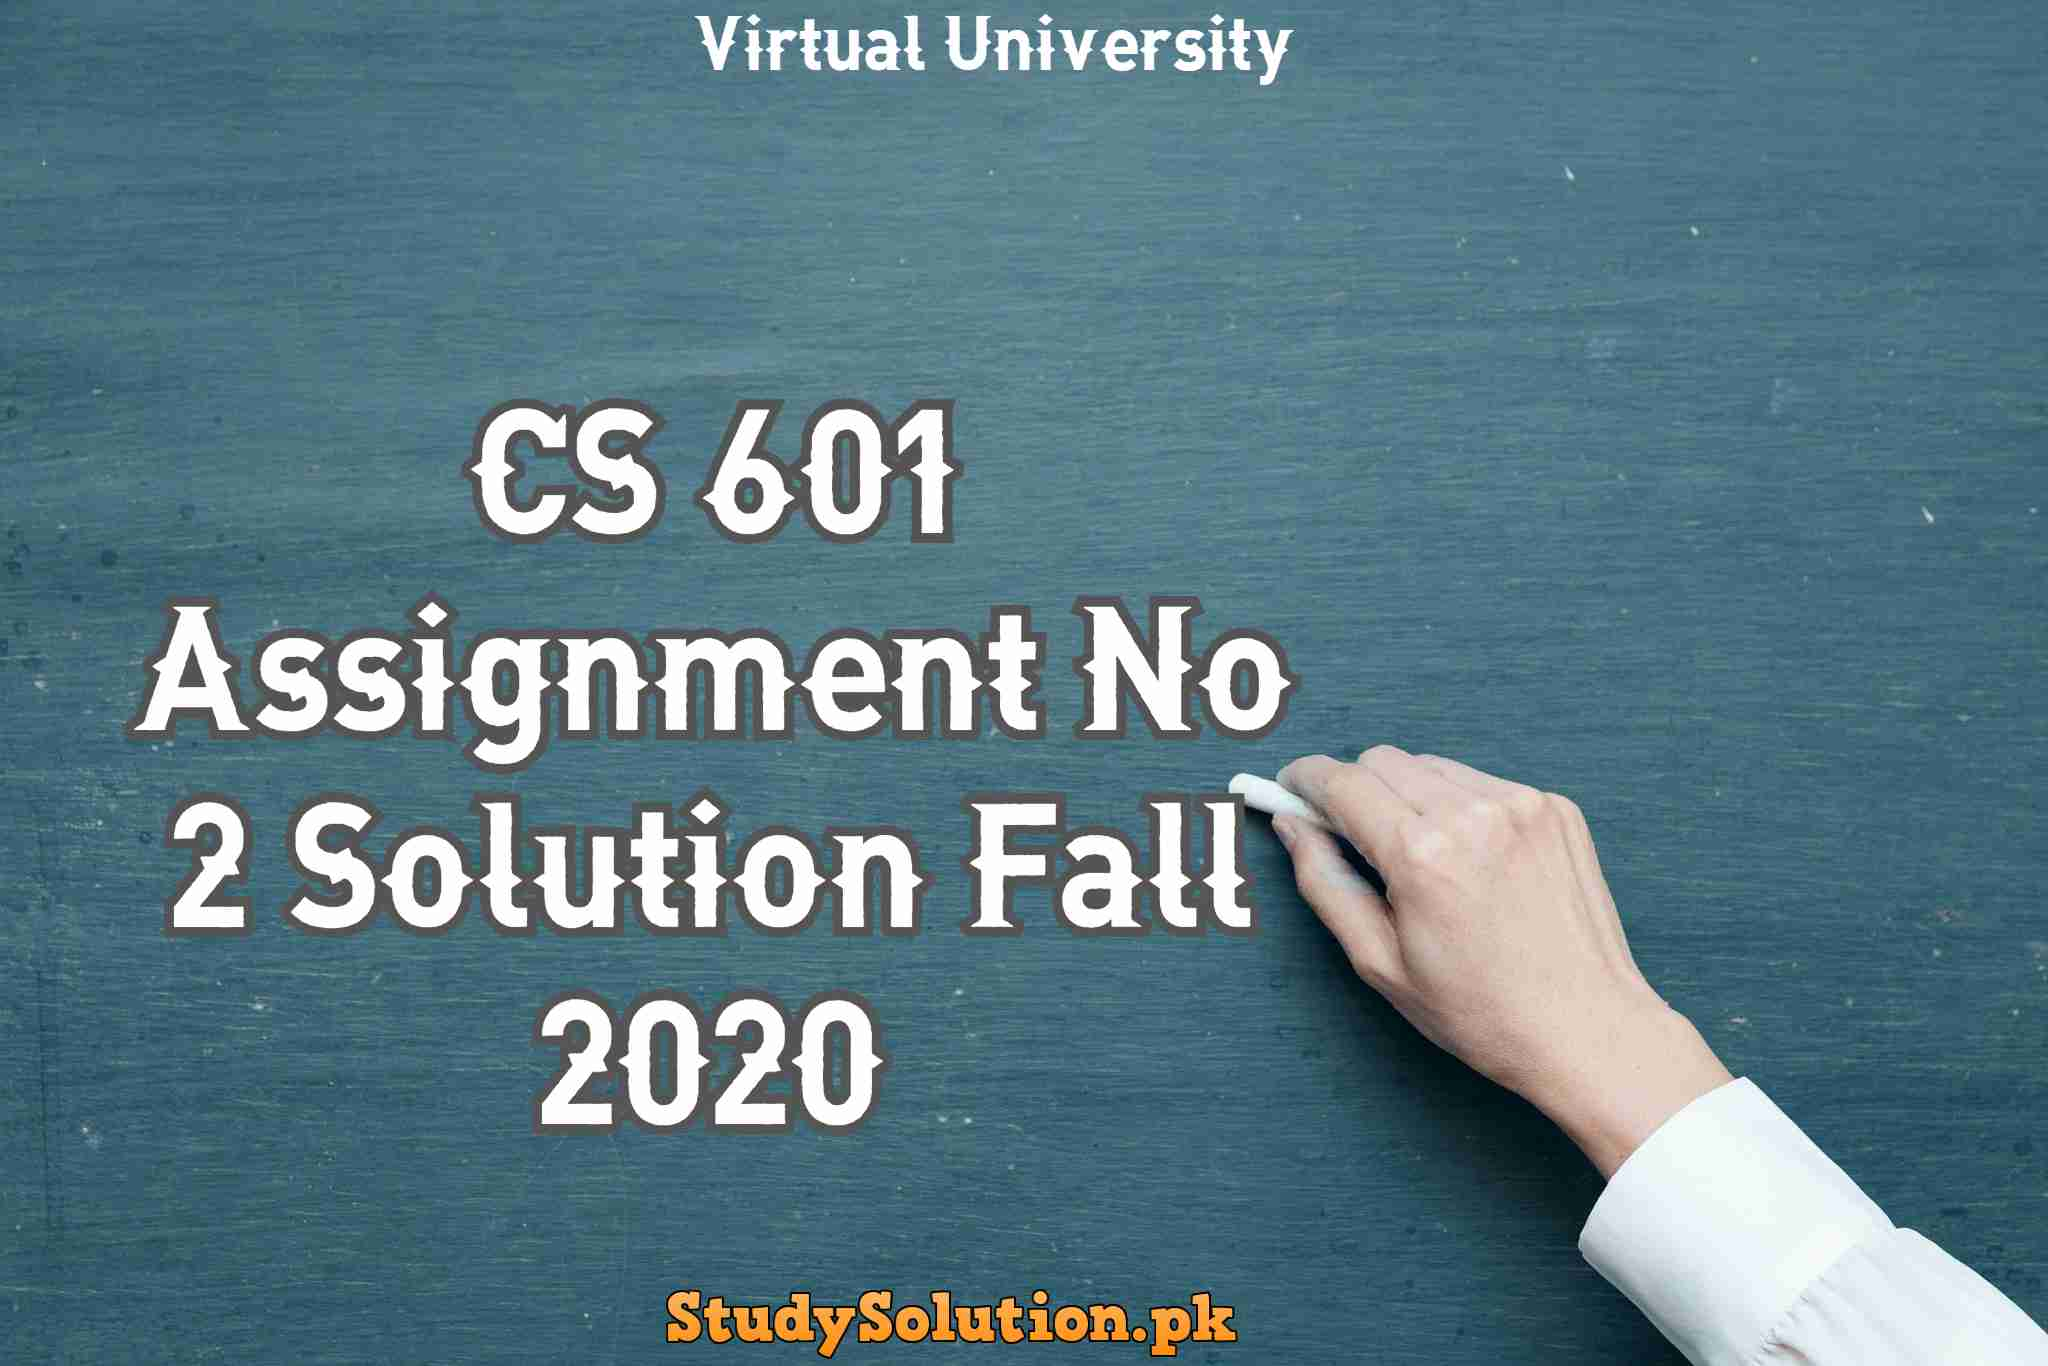 CS 601 Assignment No 2 Solution Fall 2020